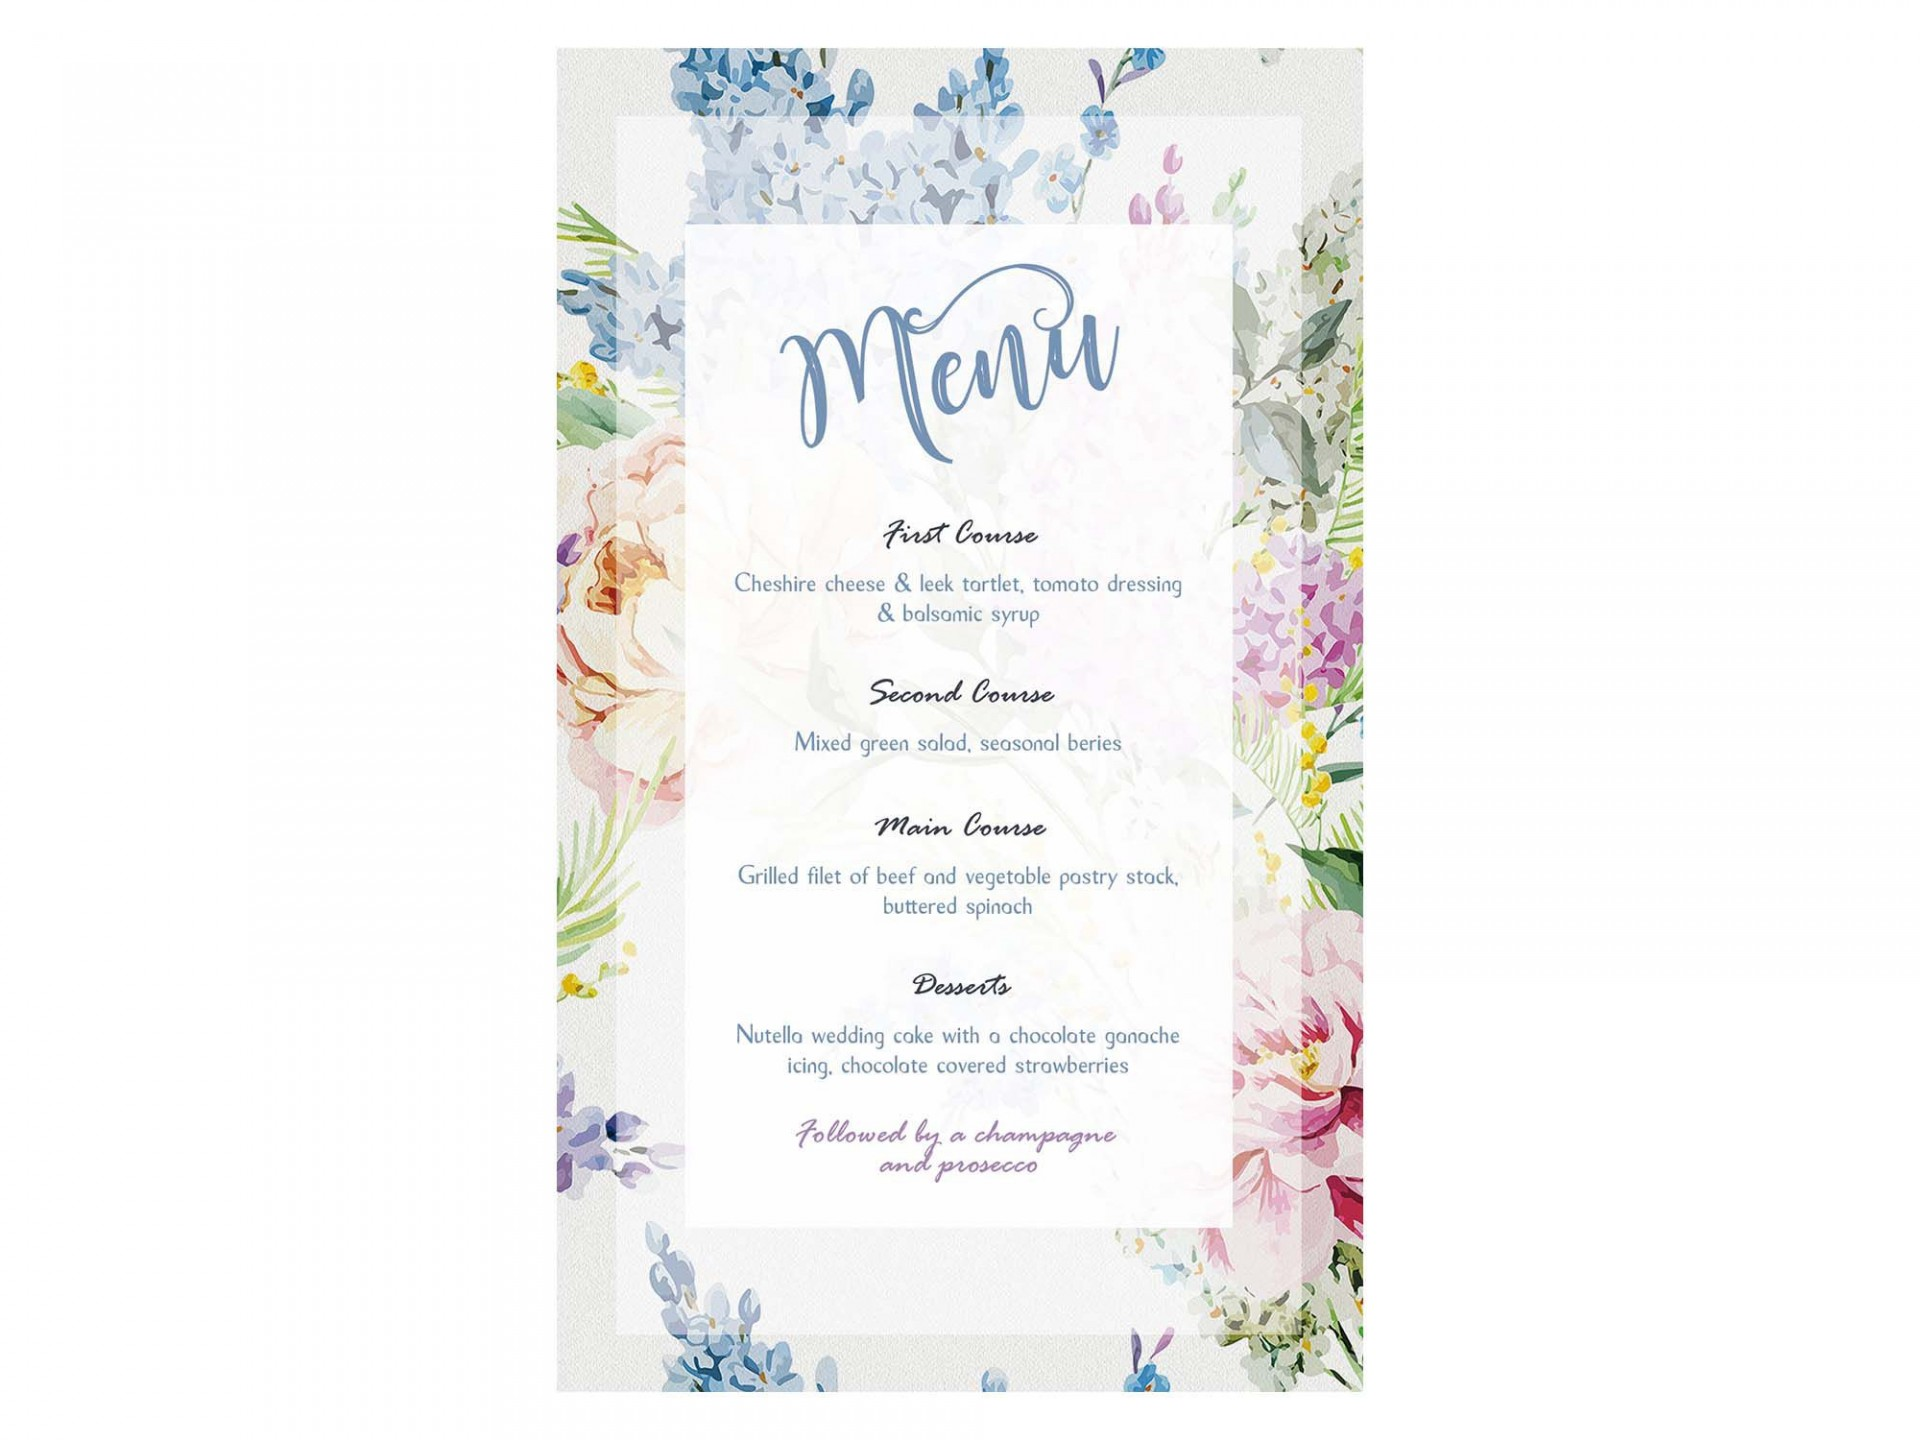 007 Formidable Free Wedding Menu Template Highest Clarity  Templates Printable For Mac1920